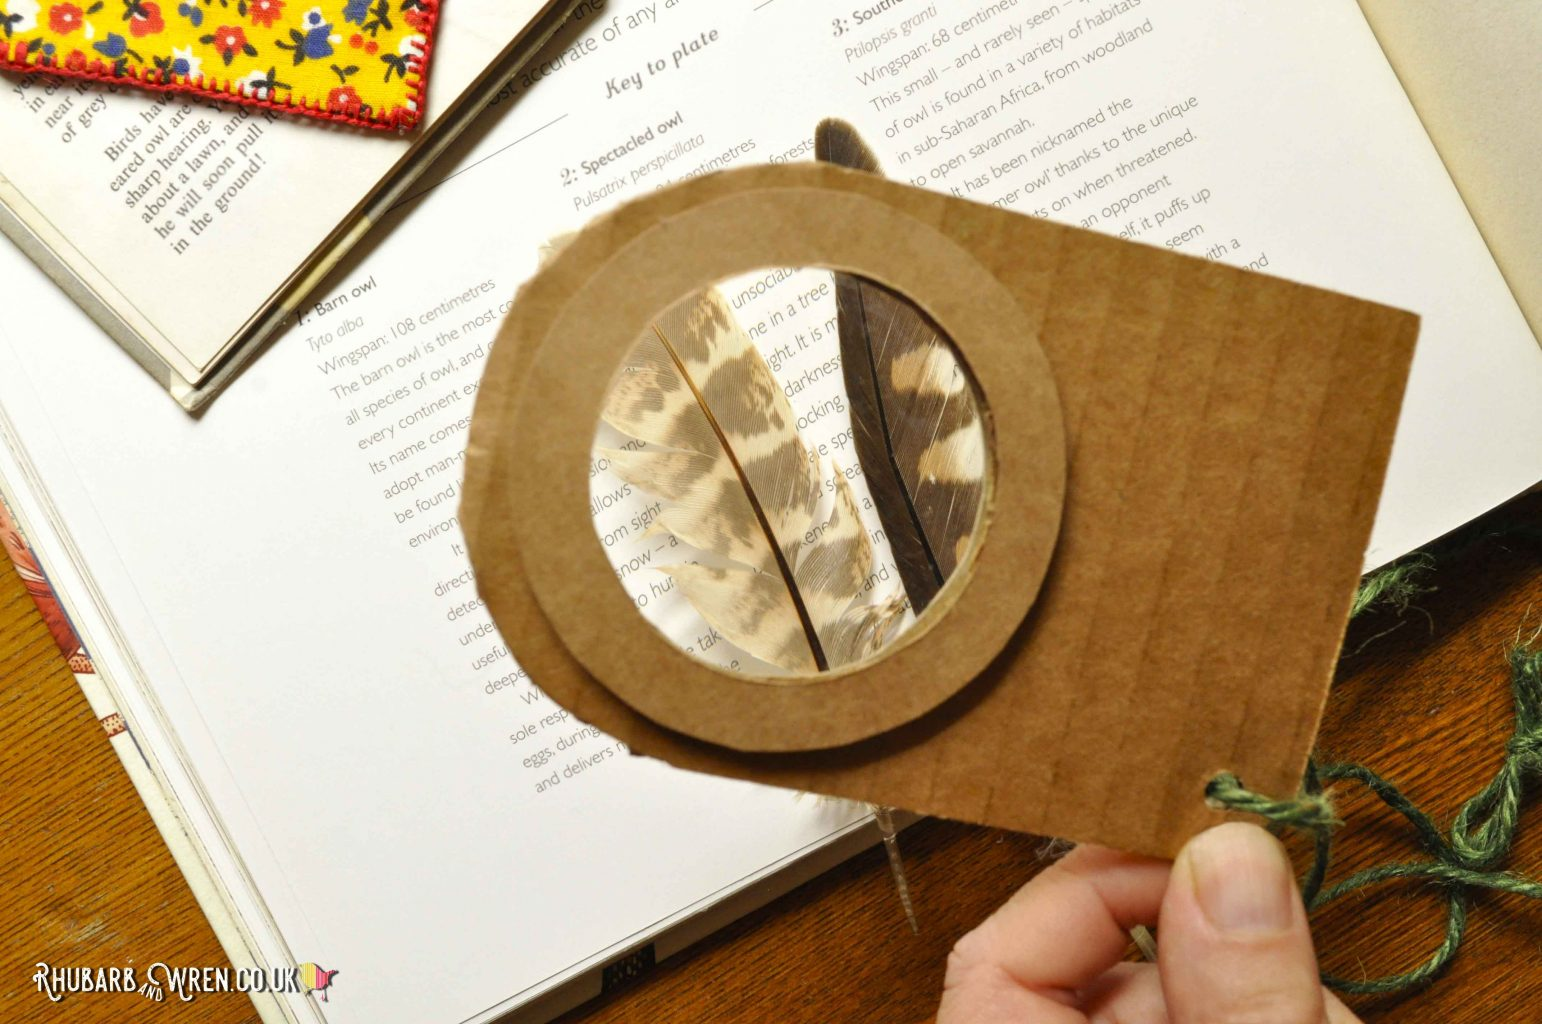 A cardboard, home-made magnifying glass